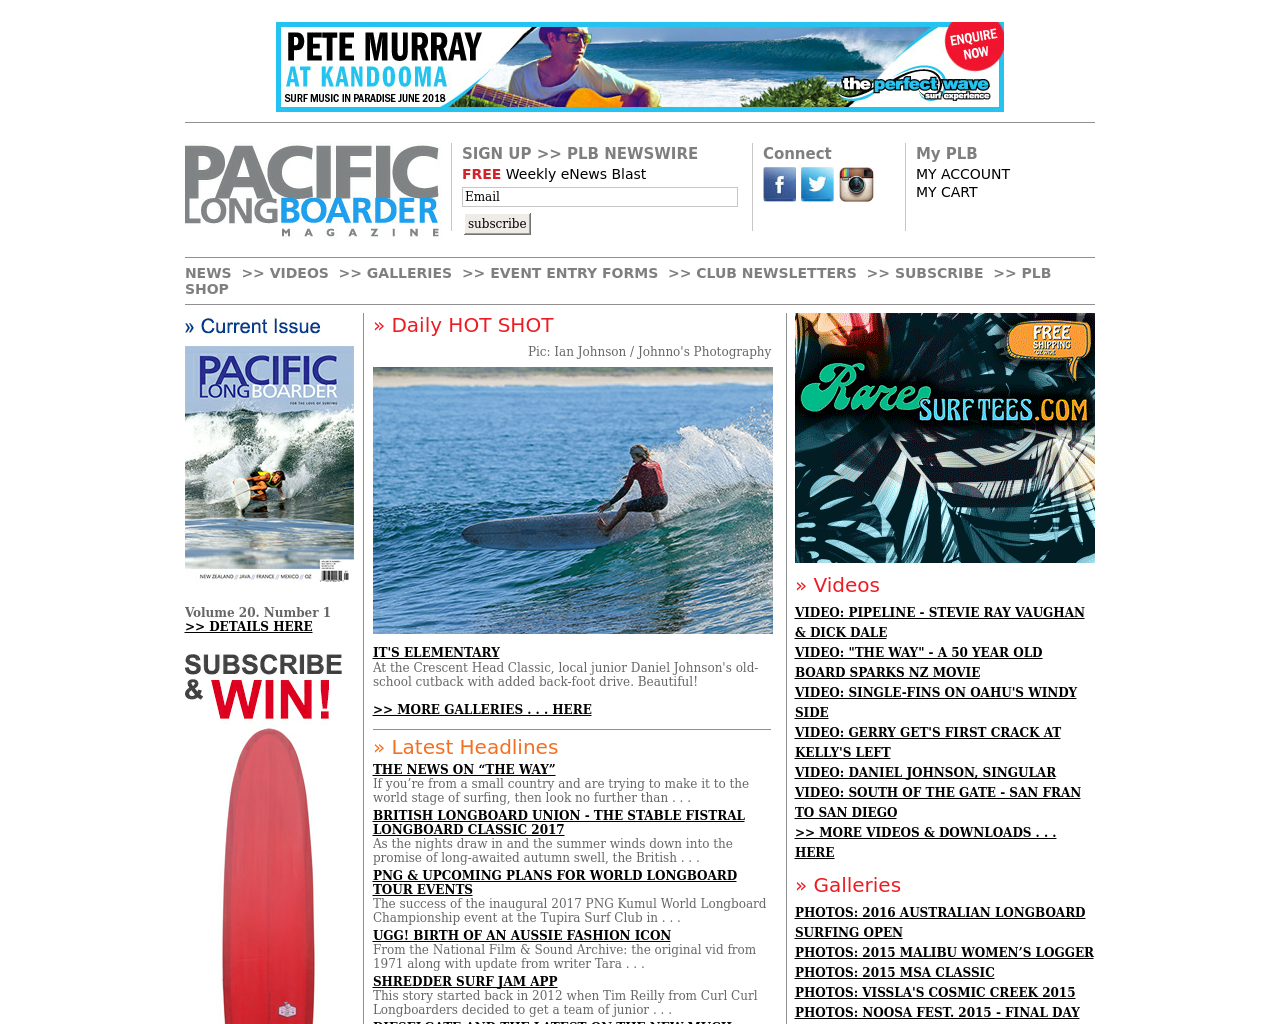 Pacific-Longboarder-Advertising-Reviews-Pricing